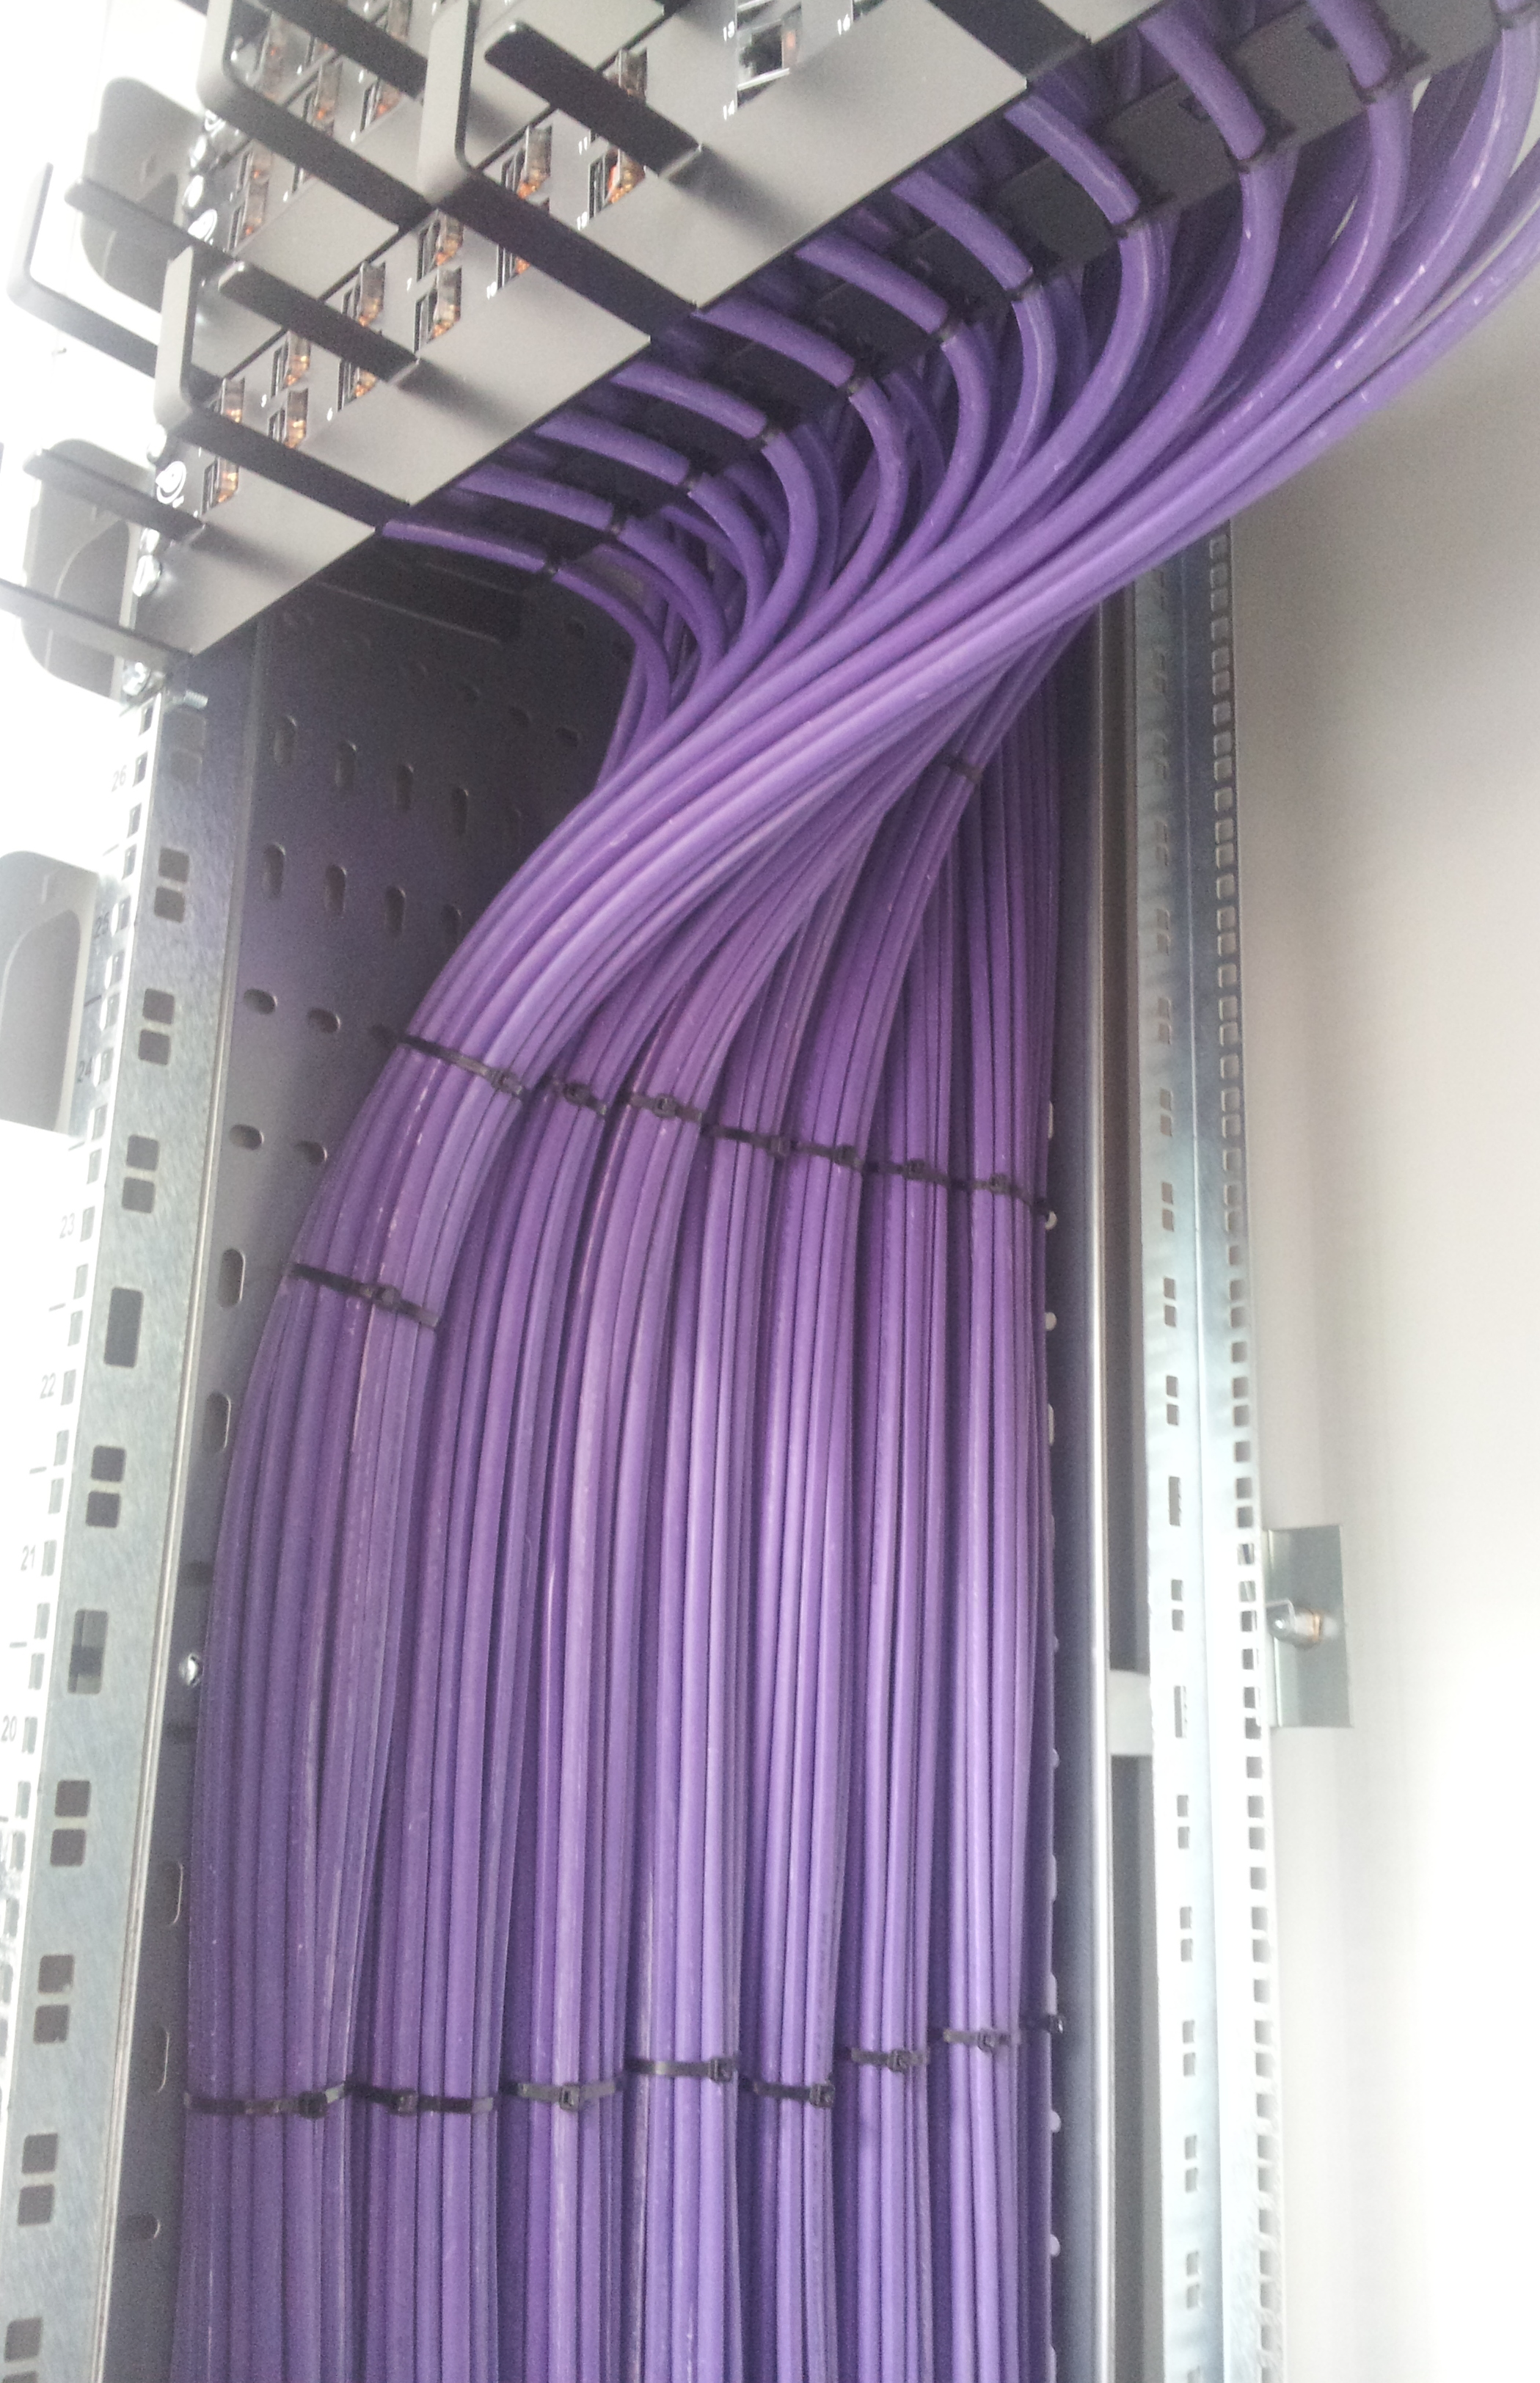 Fibre Optic Test Equipment Fiber Optic Cable Blowing Put